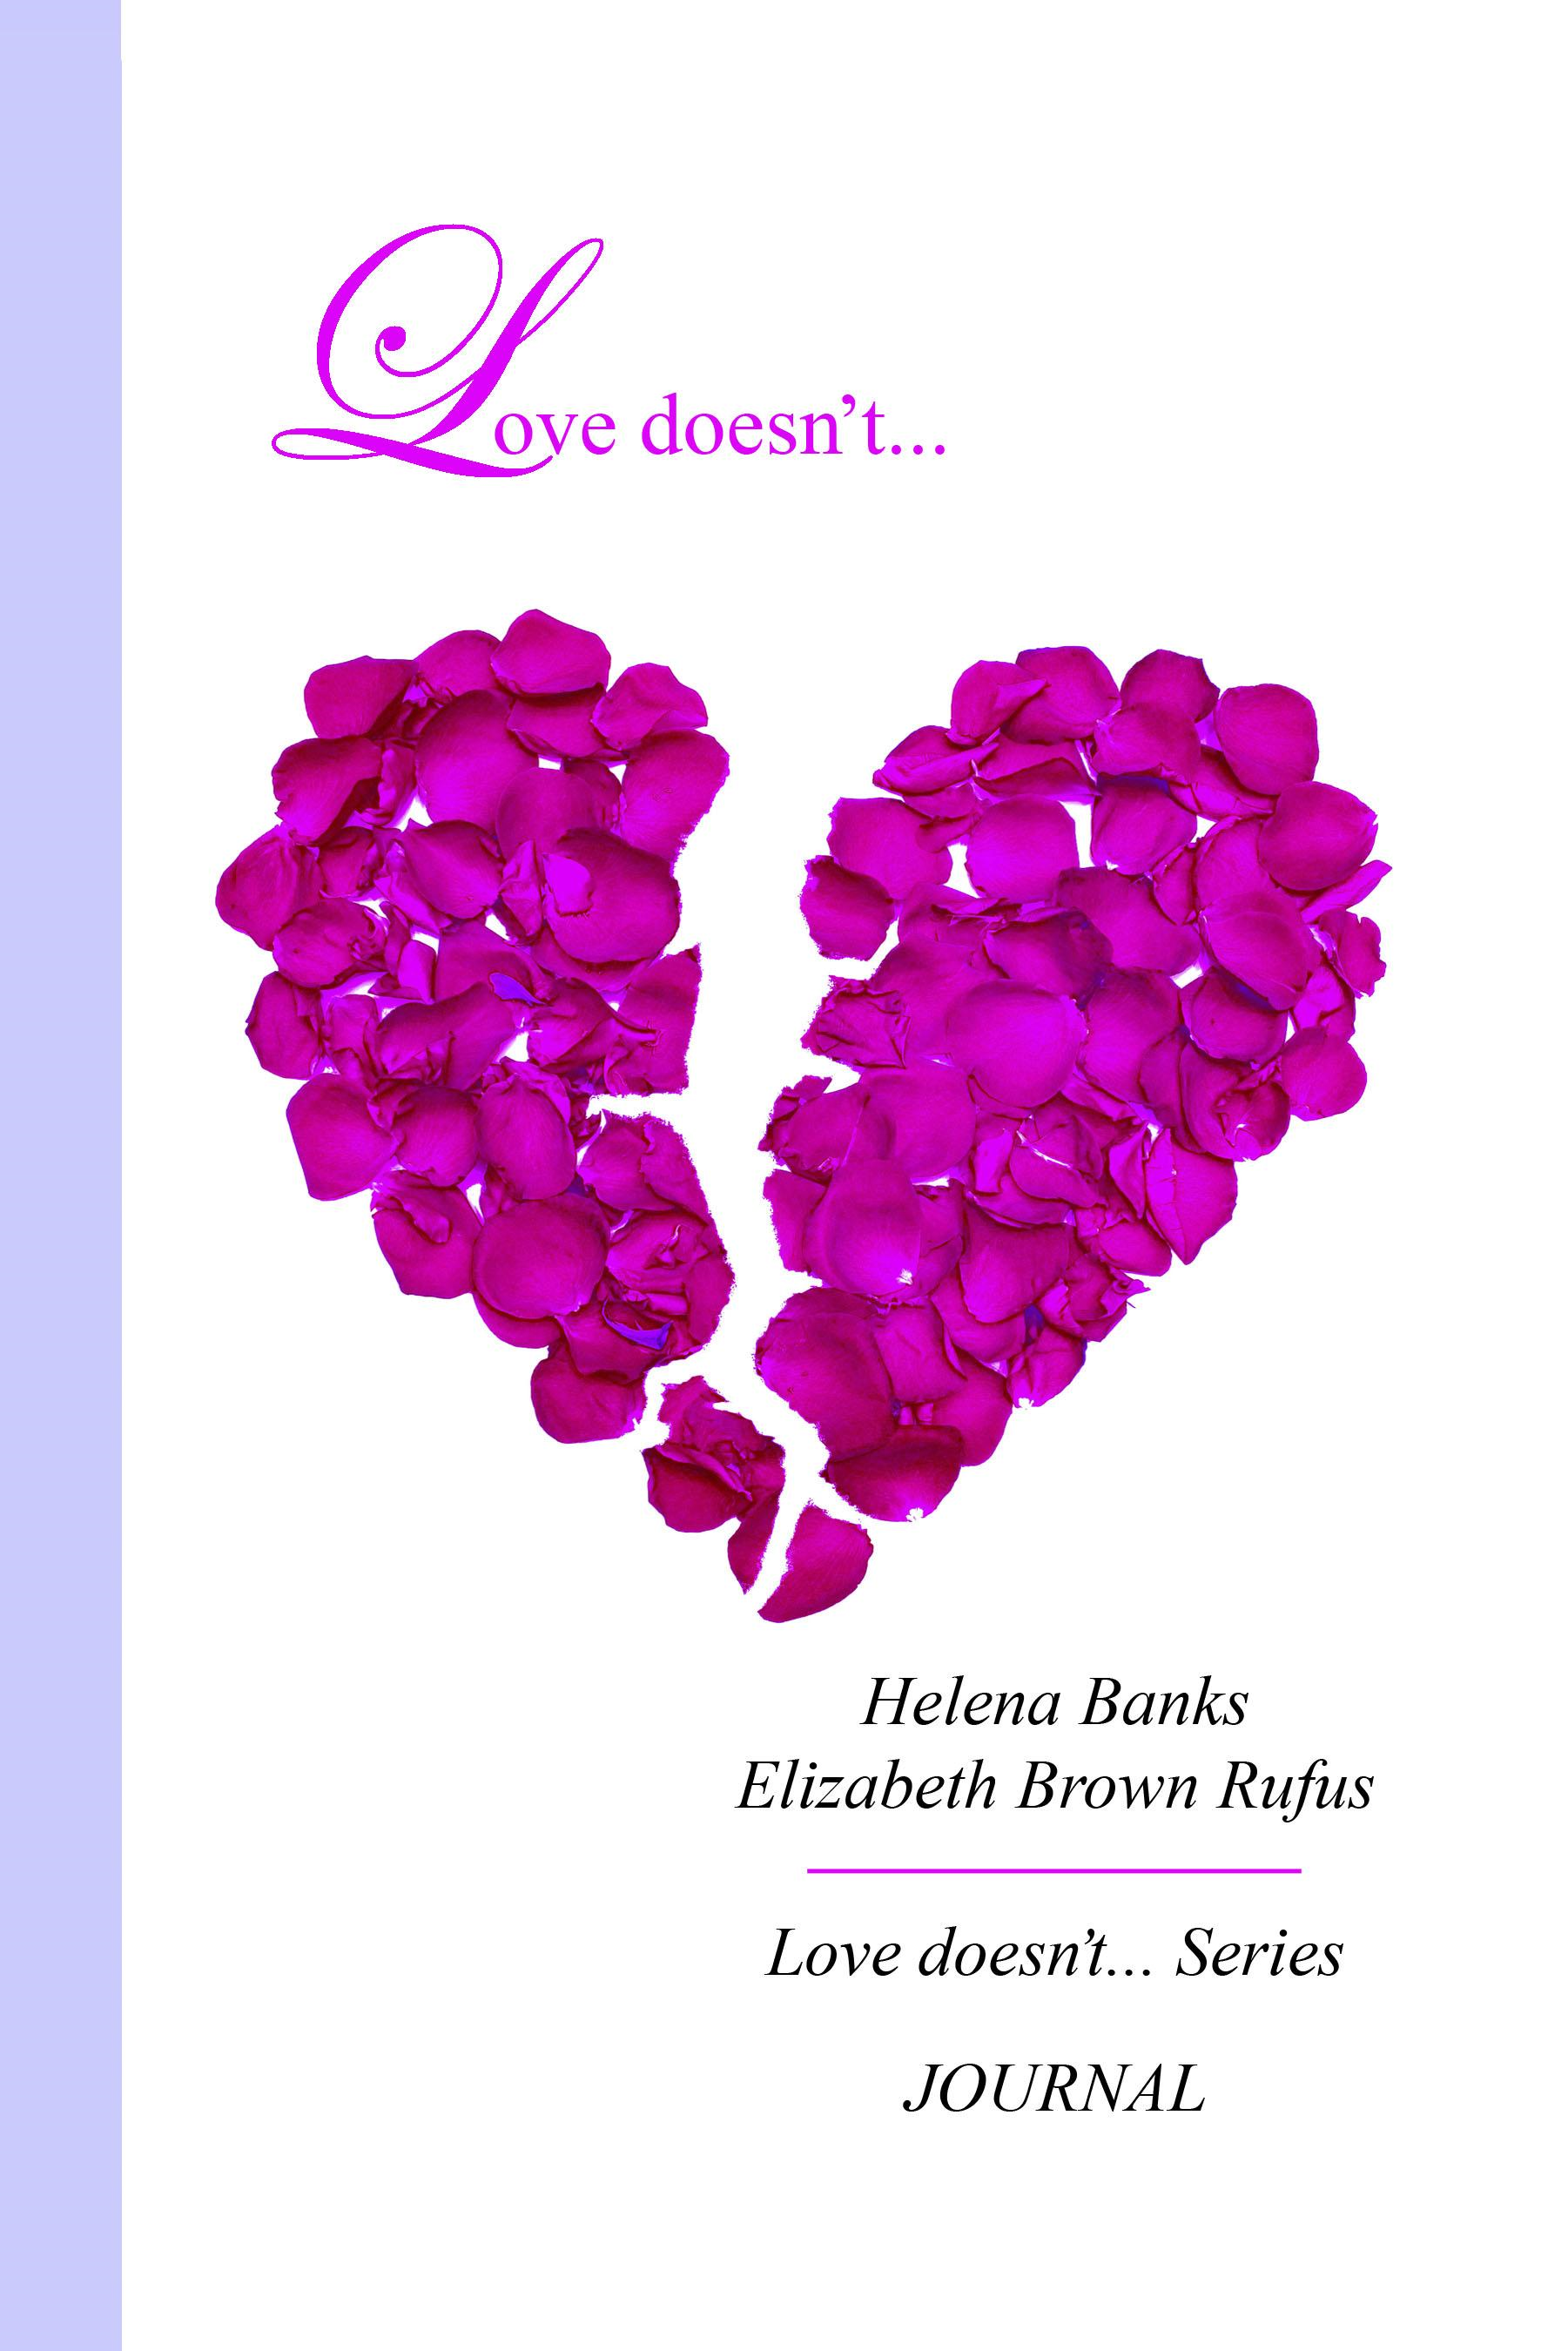 Love doesn't... Journal By: Elizabeth Brown Rufus